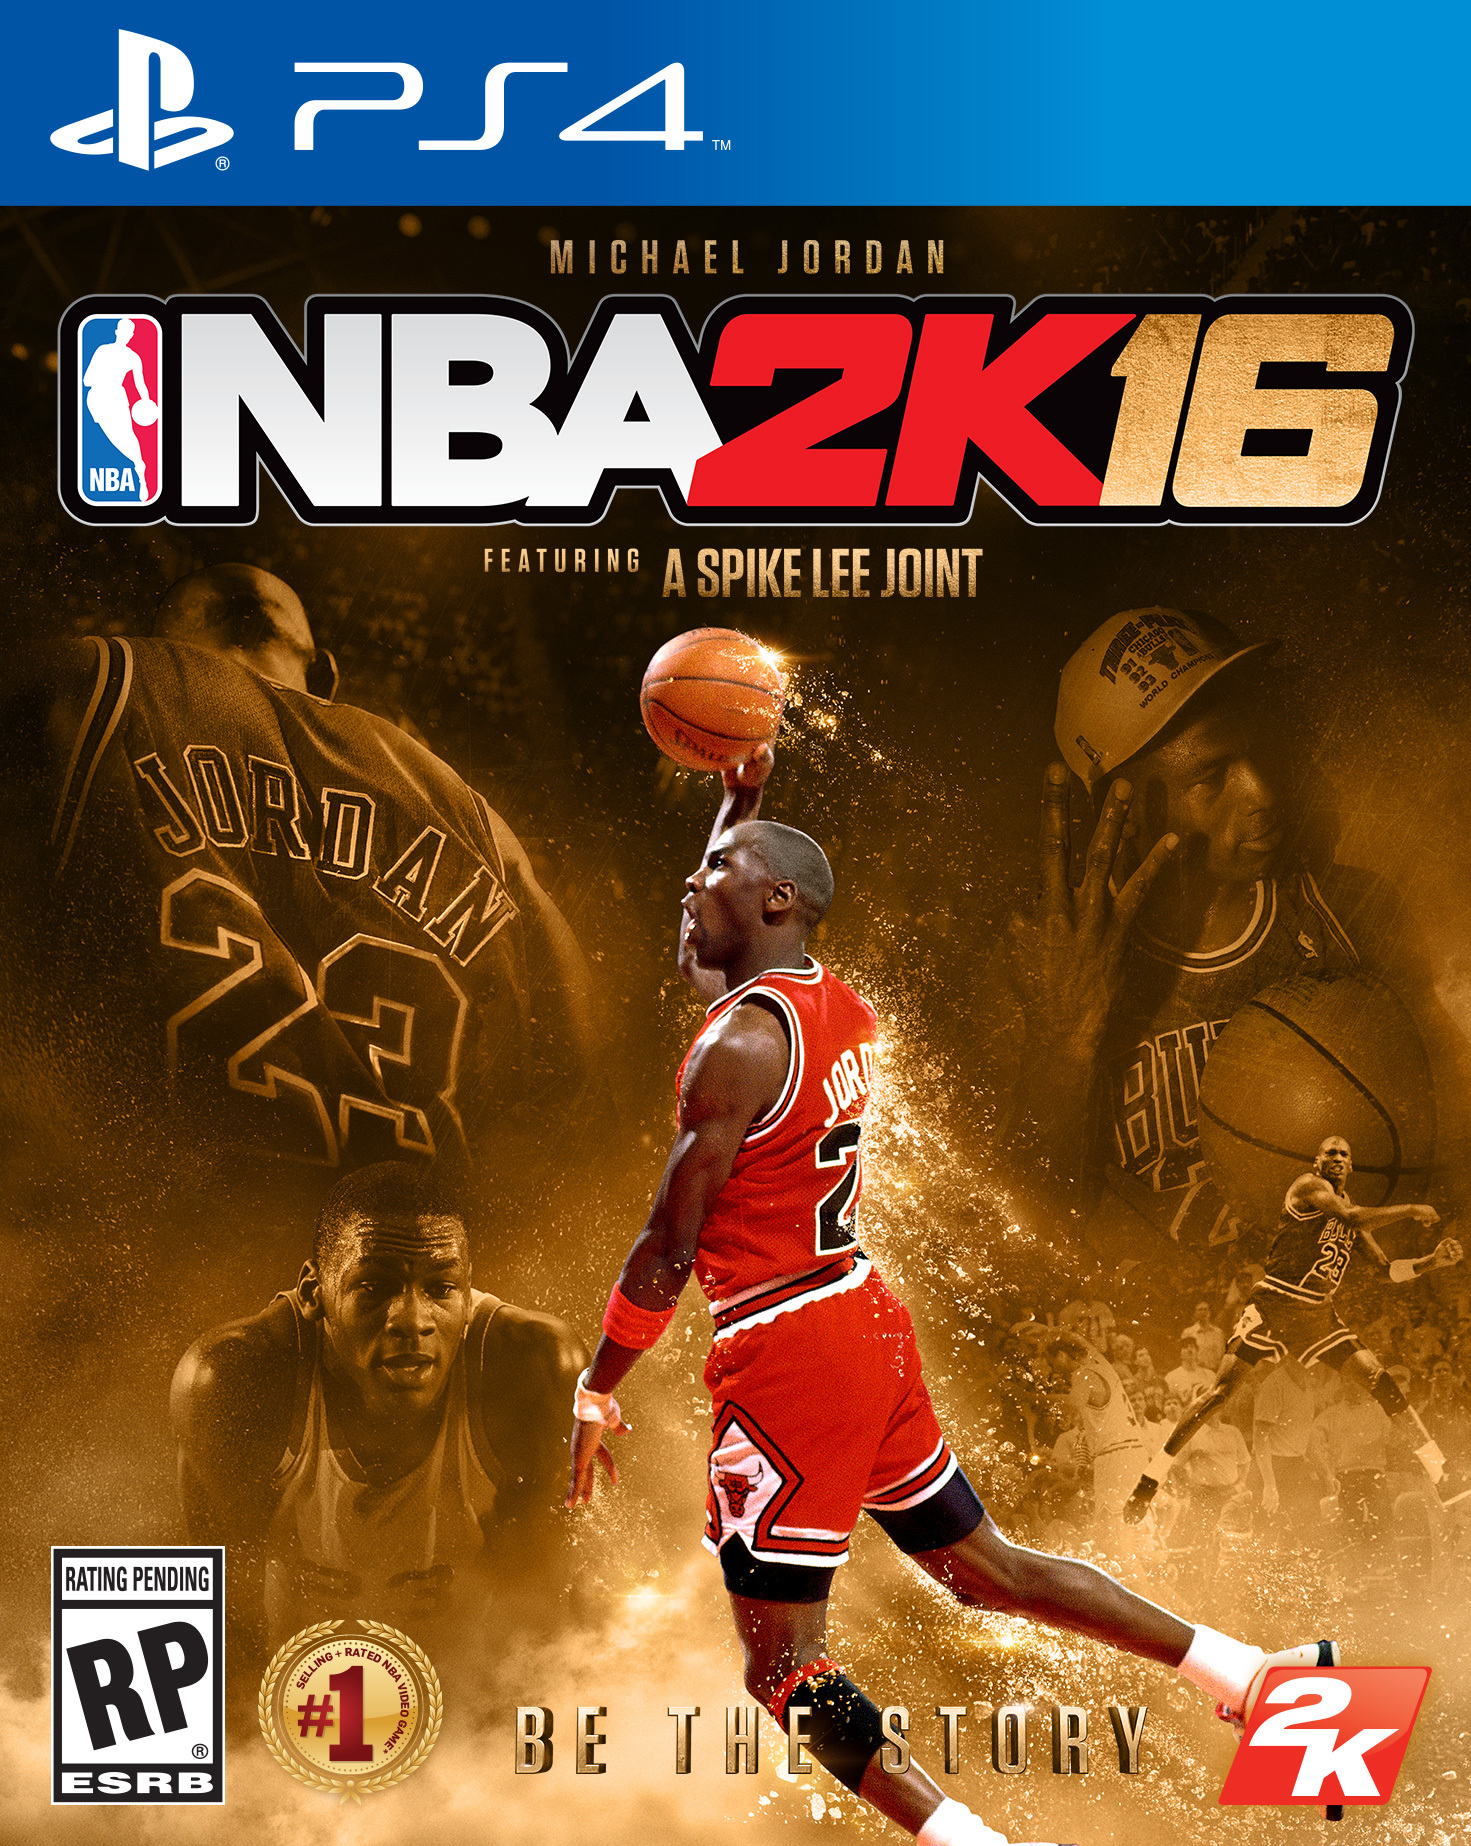 NBA® 2K16 Takes Flight with Special Edition Featuring NBA